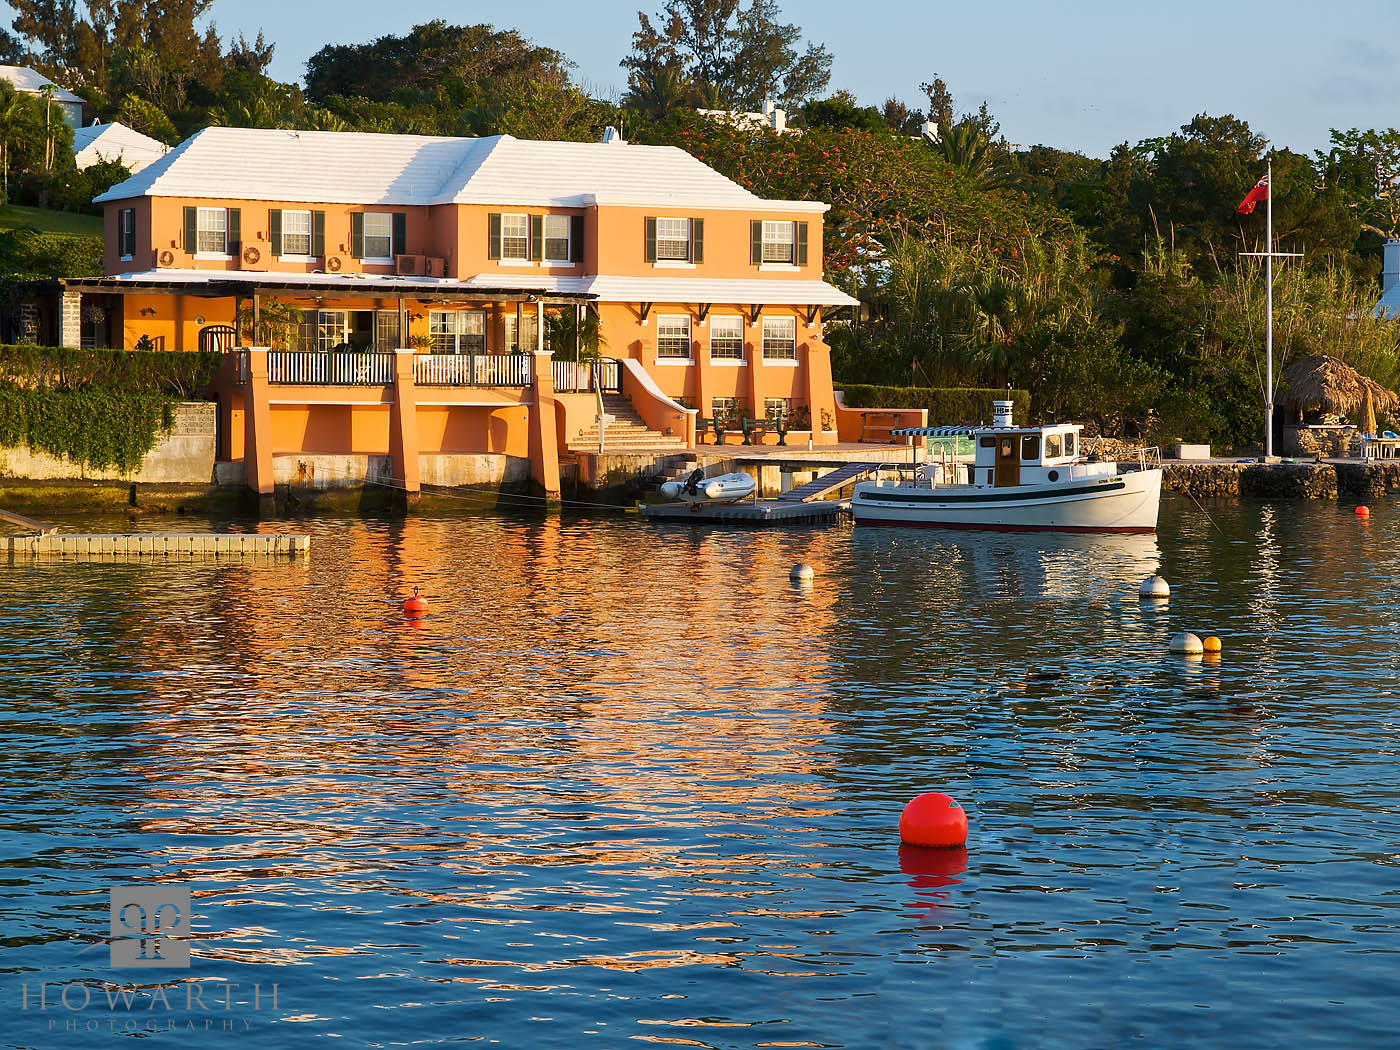 local, house, water, reflection, Bermudian, architecture, salt, kettle, paget, photo